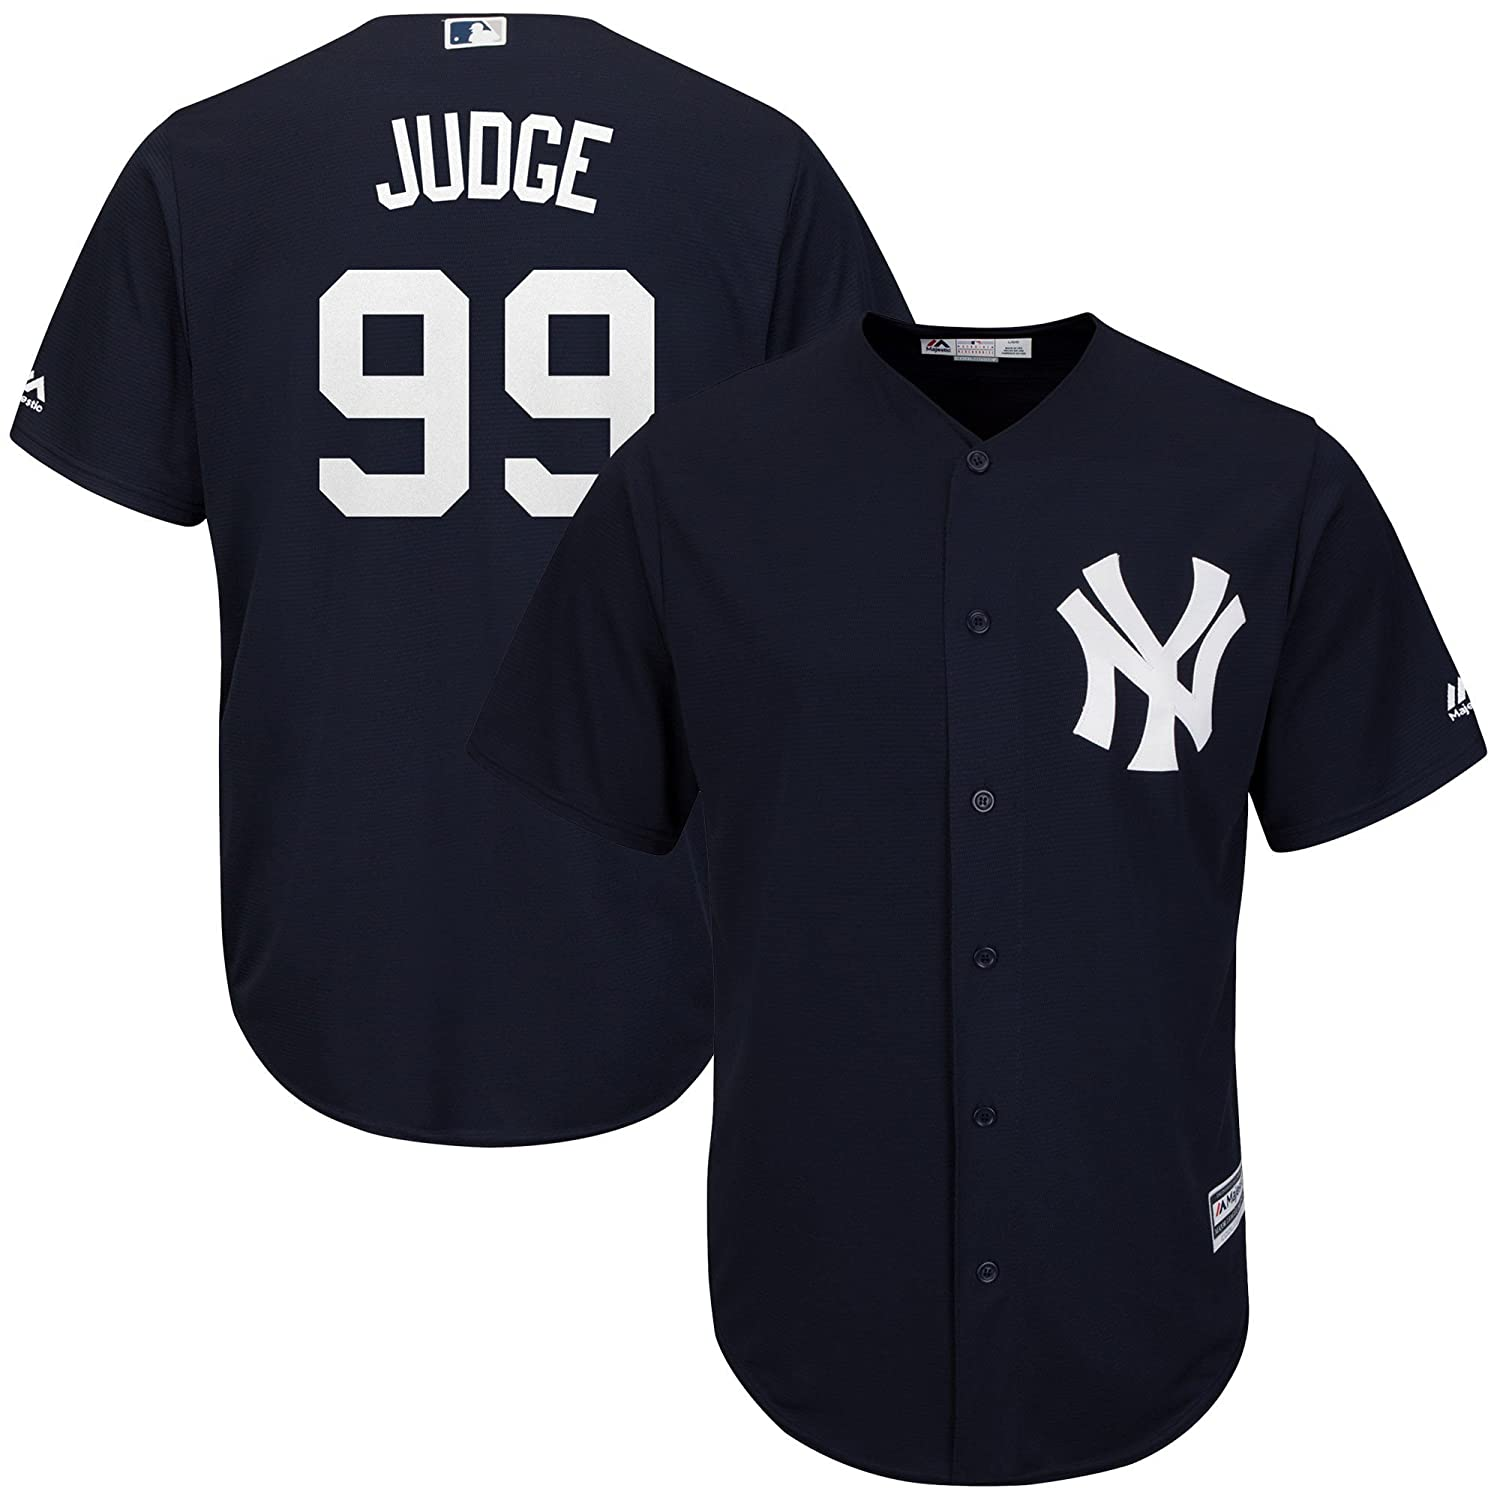 2fcddbe5575 Amazon.com  Majestic Aaron Judge New York Yankees MLB Youth Navy Alternate  Cool Base Replica Jersey  Clothing